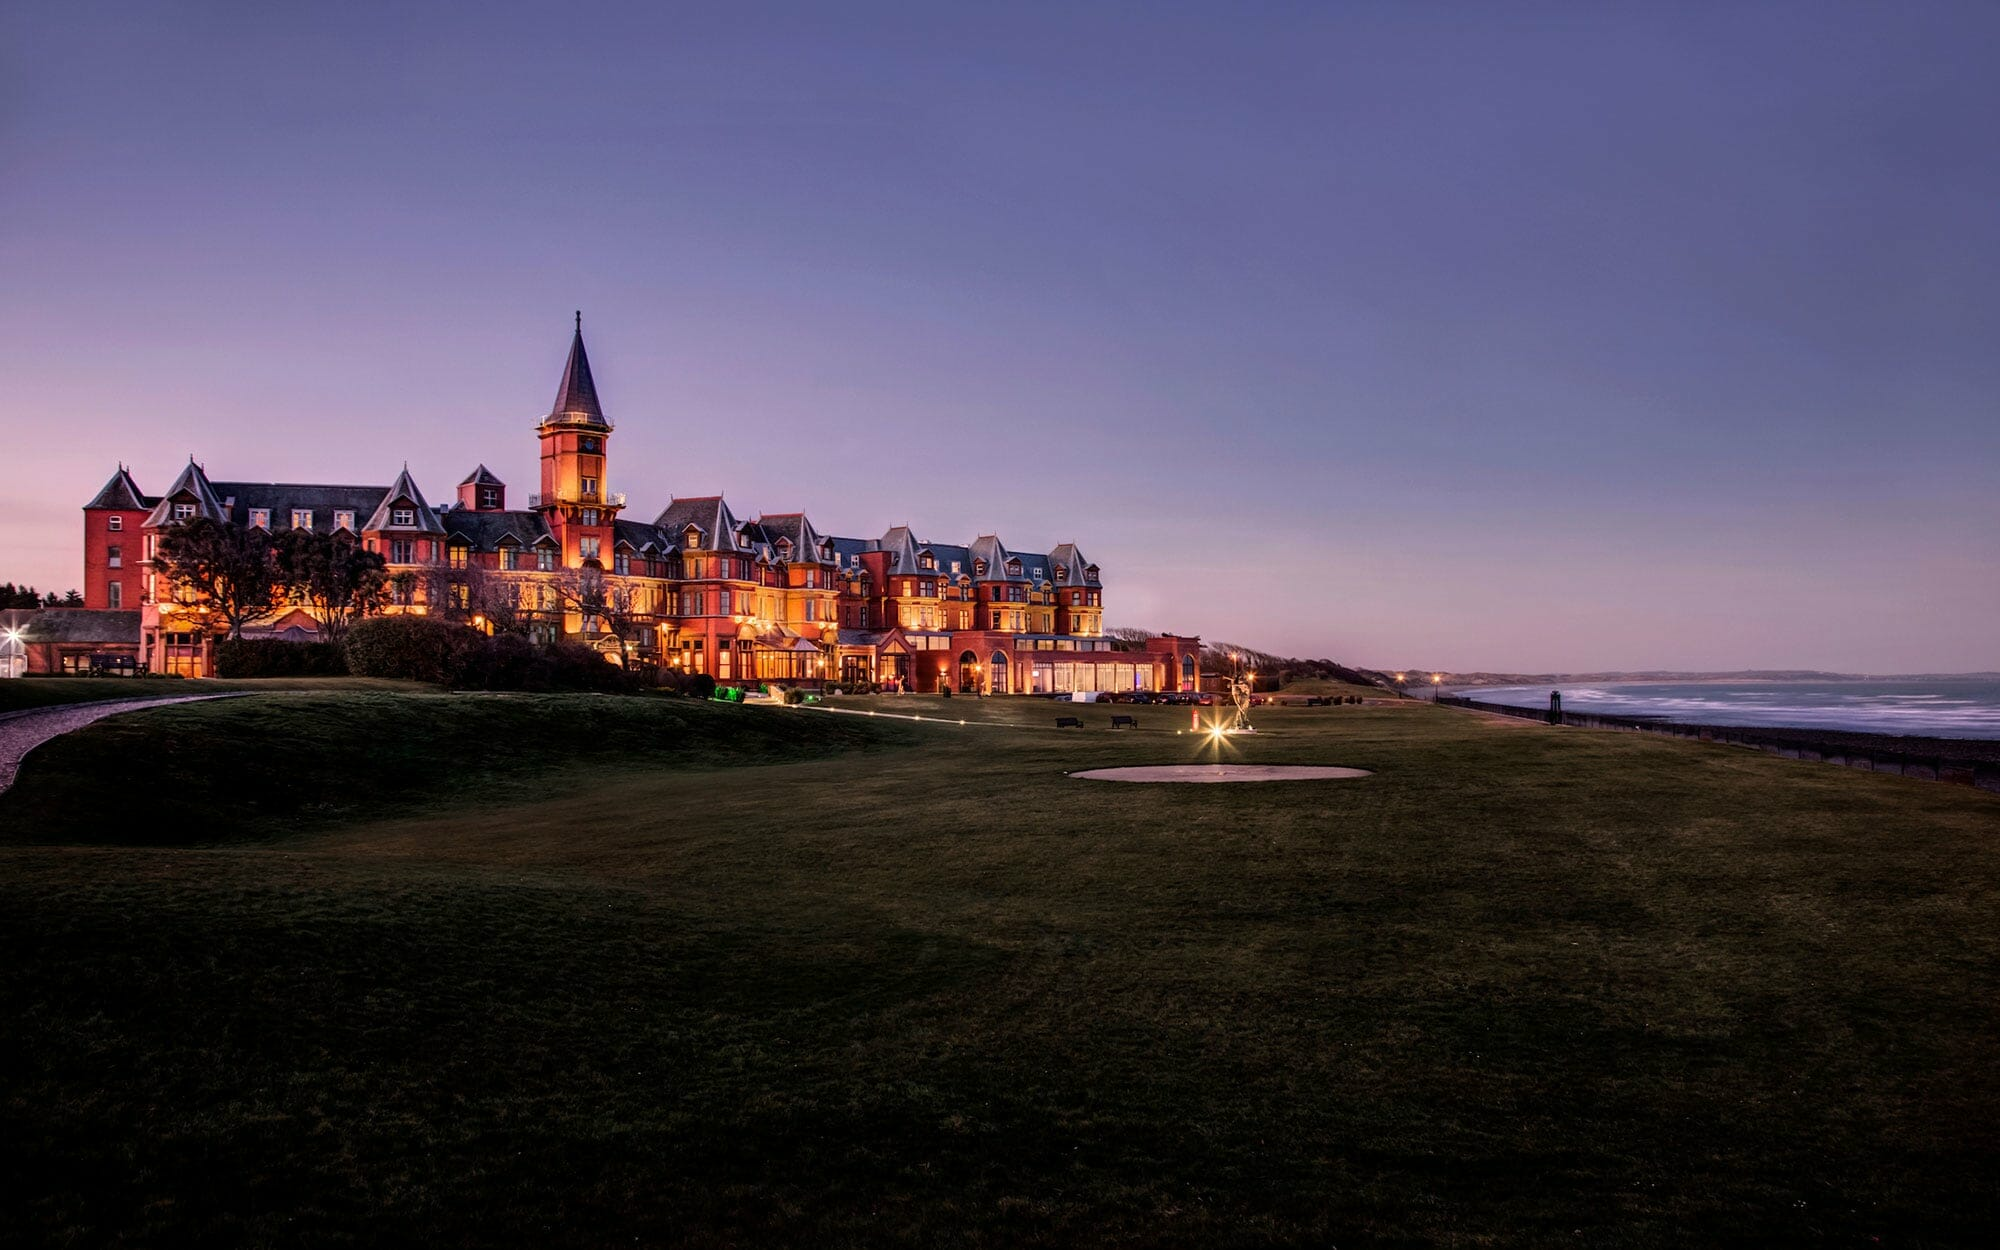 Twilight view of the Slieve Donard Resort and spa, Northern Ireland